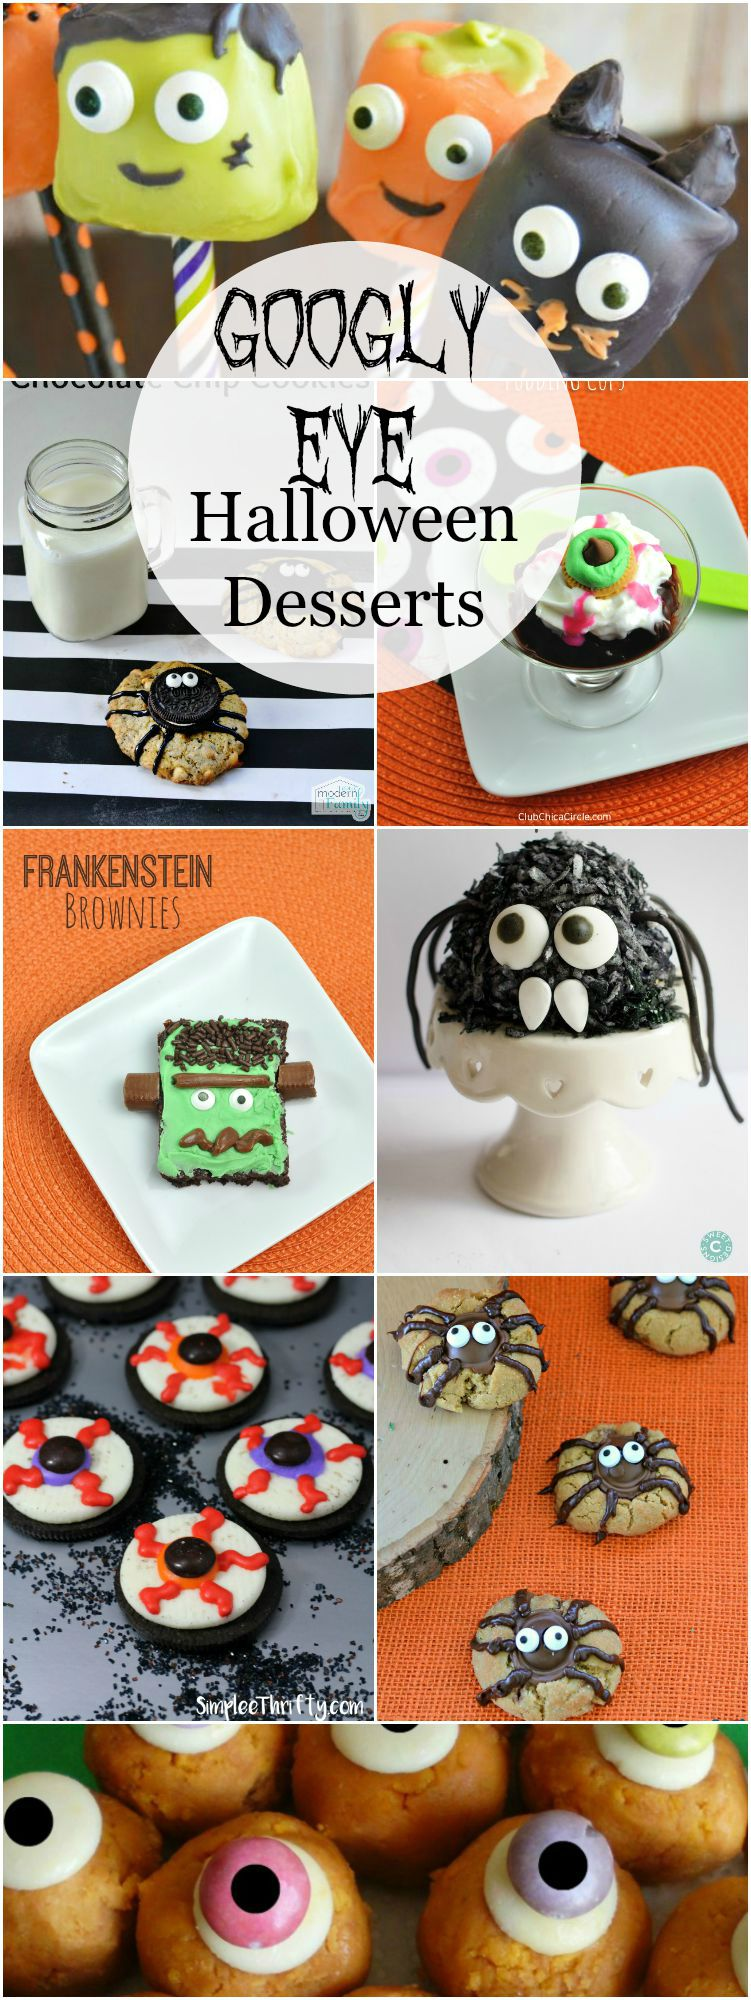 Googly Eye Halloween Desserts are the perfect Halloween Dessert to scare up a crowd and please the kiddos.